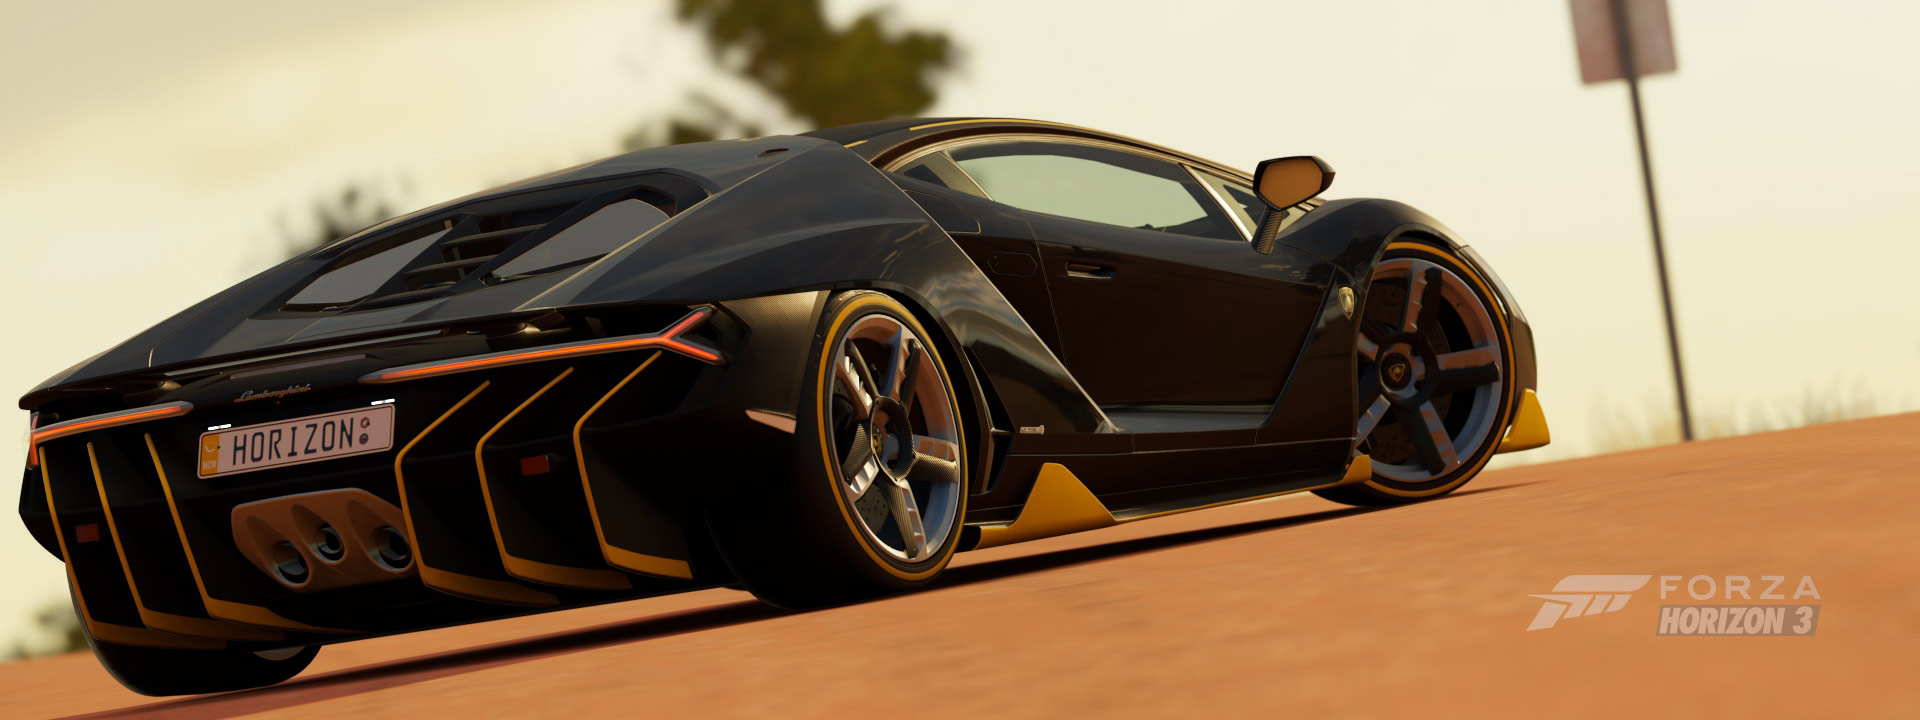 Mountain View Chevrolet >> Forza Horizon 3 for Xbox One and Windows 10 | Xbox